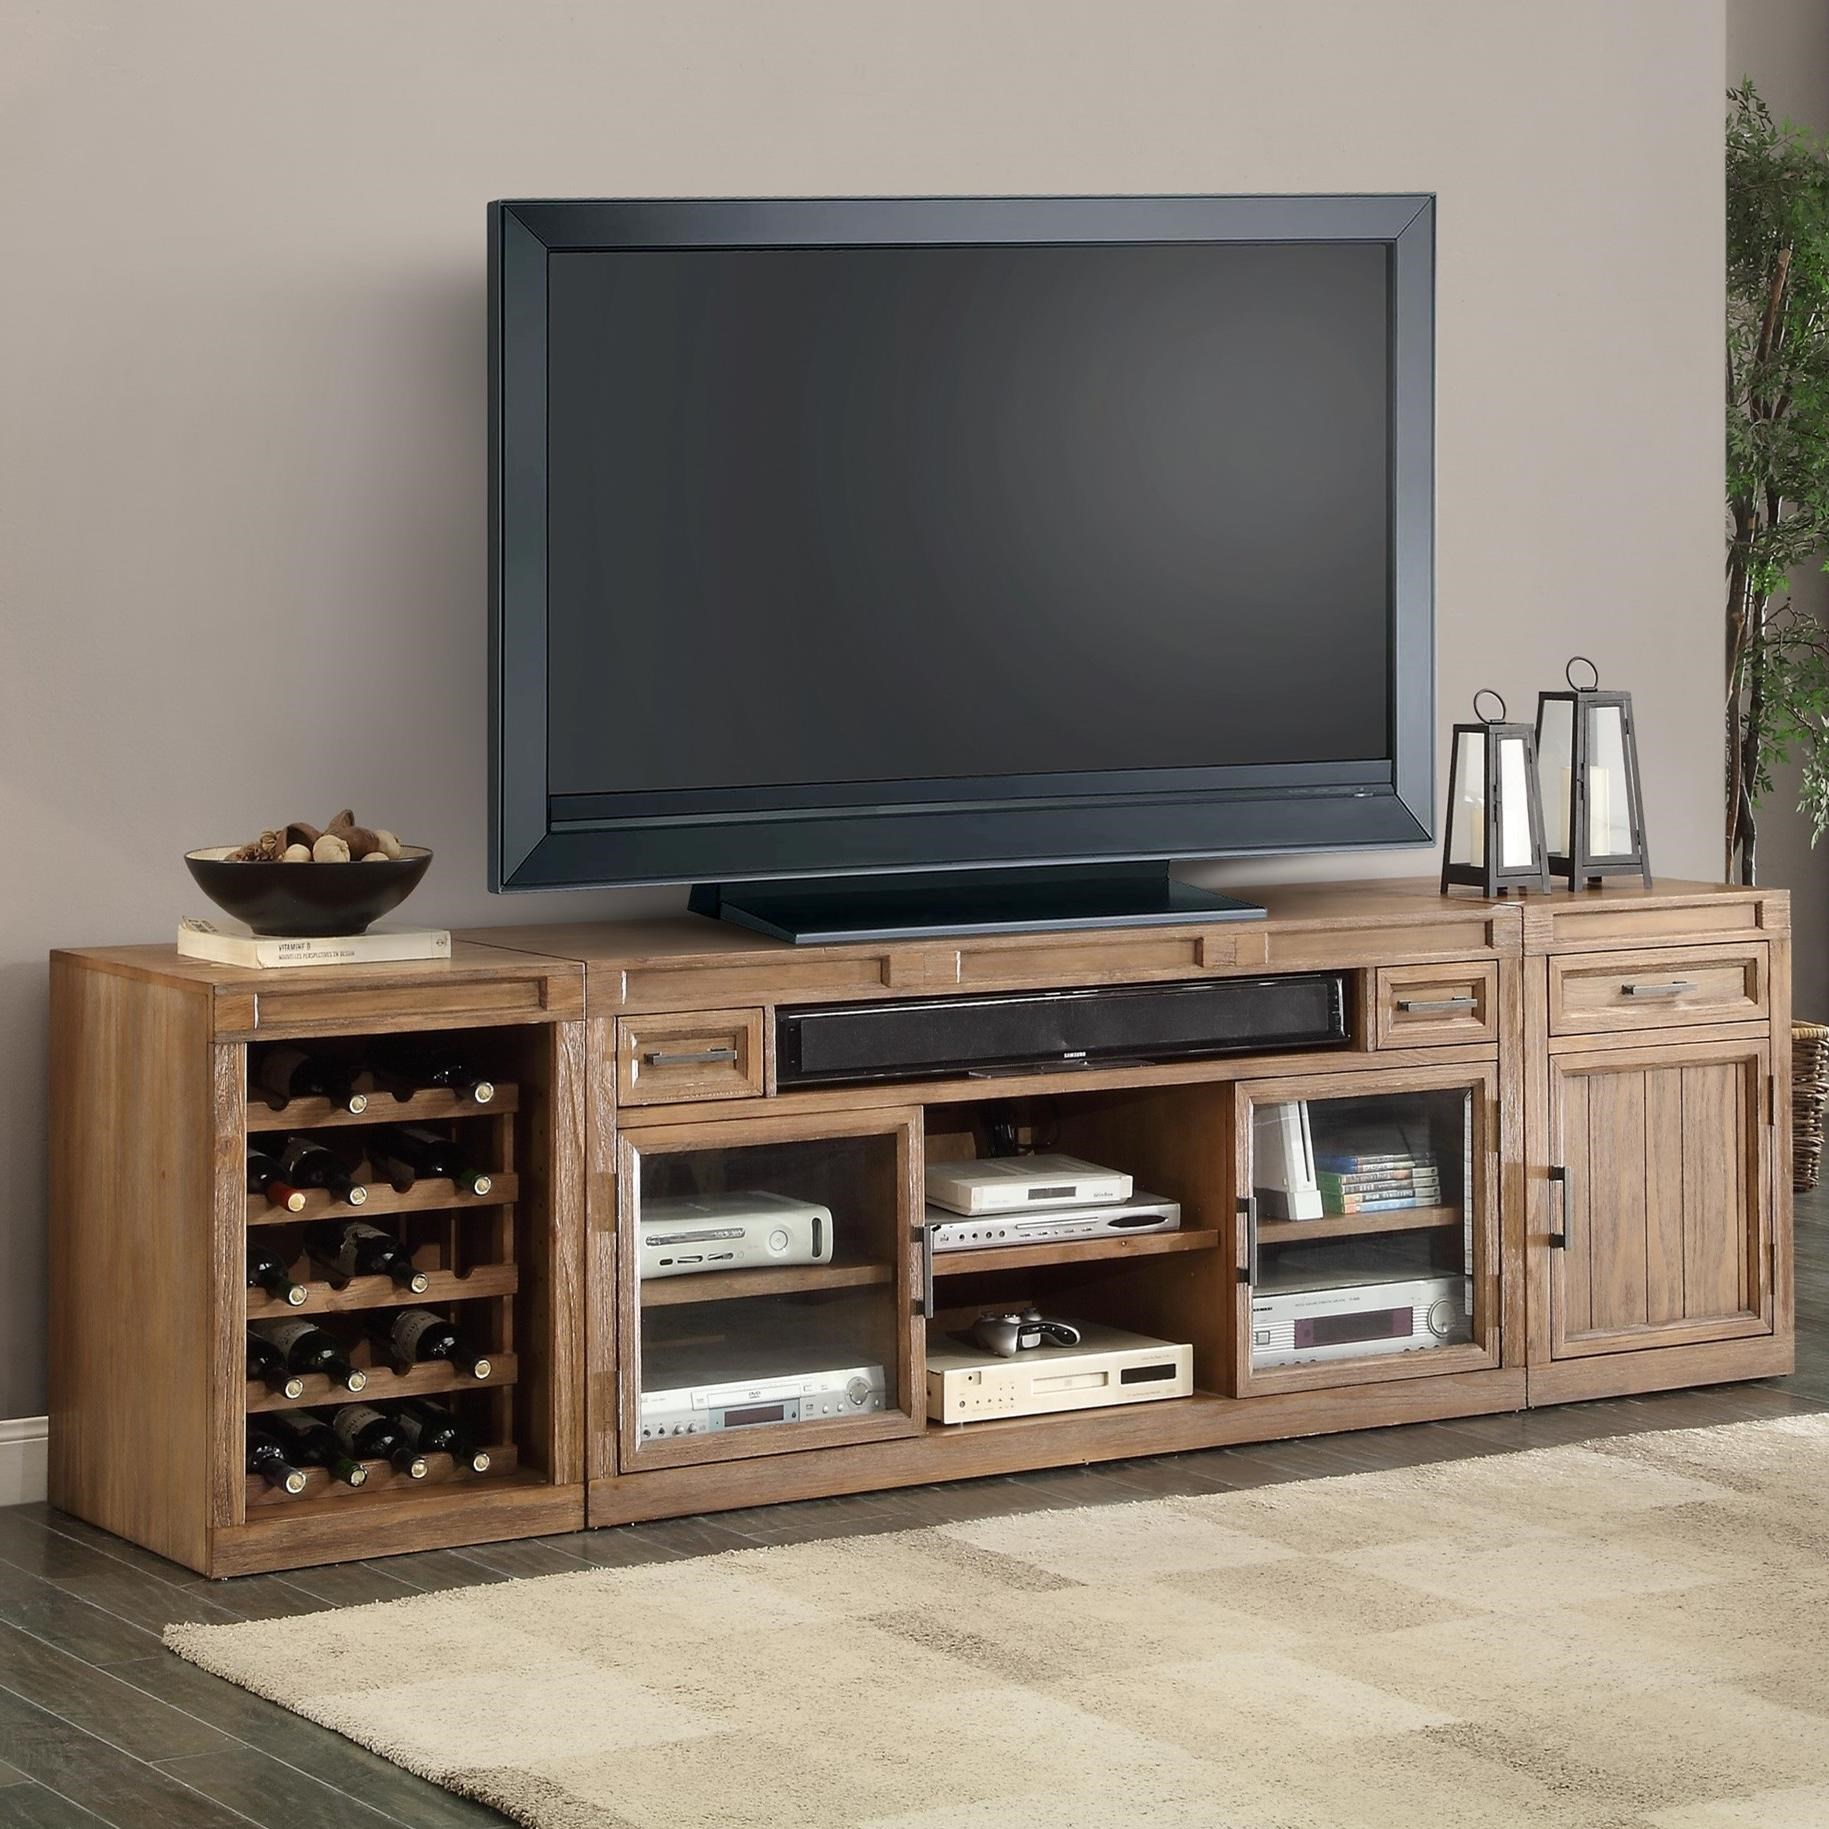 Parker house hickory creek 3 piece tv console with wine for Tv console with storage